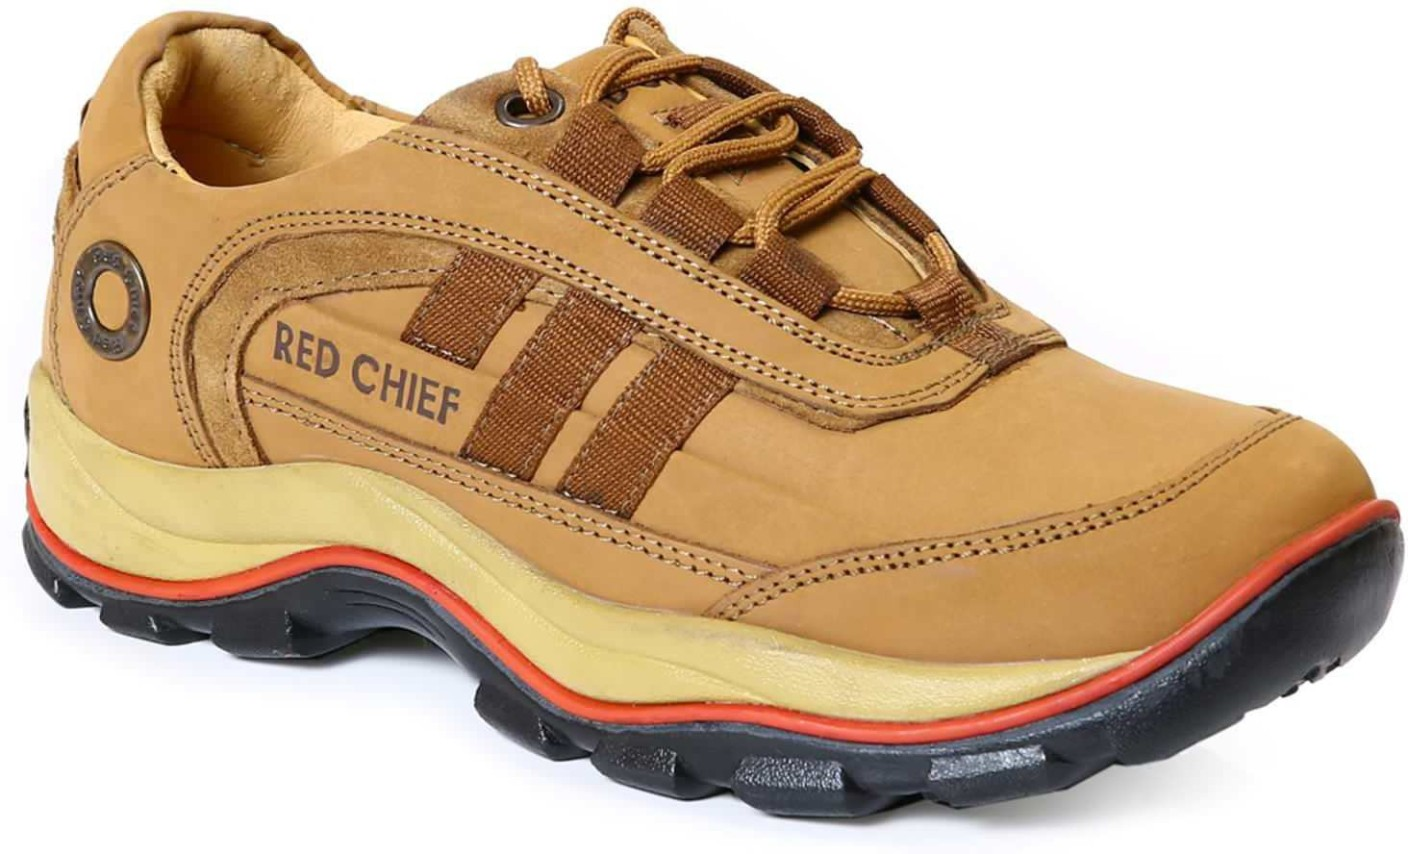 Red Chief Leather Shoes